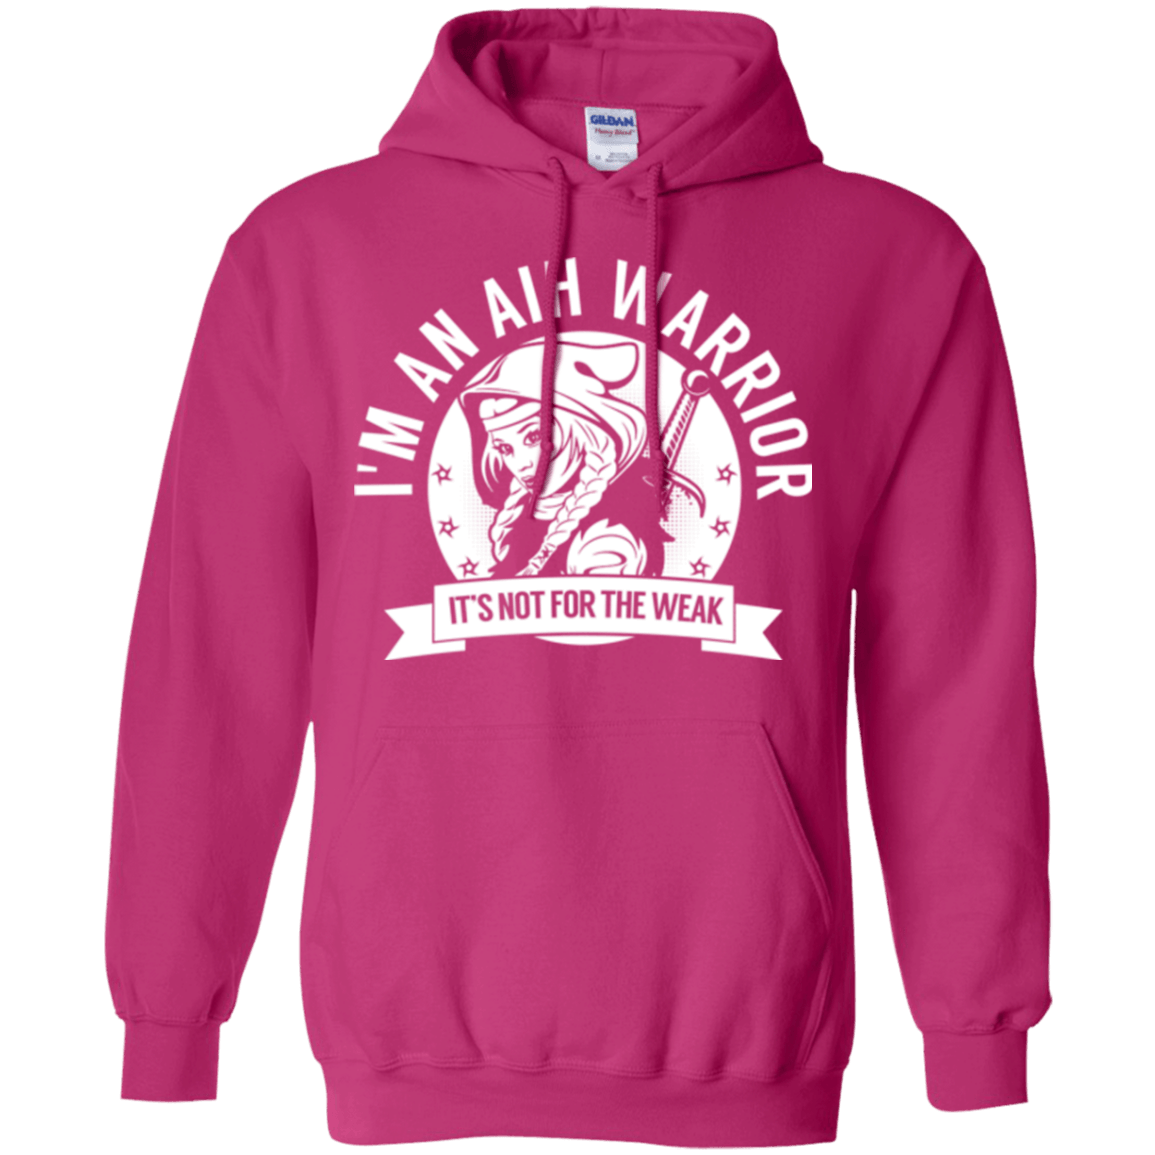 Autoimmune Hepatitis - AIH Warrior Hooded Pullover Hoodie 8 oz. - The Unchargeables